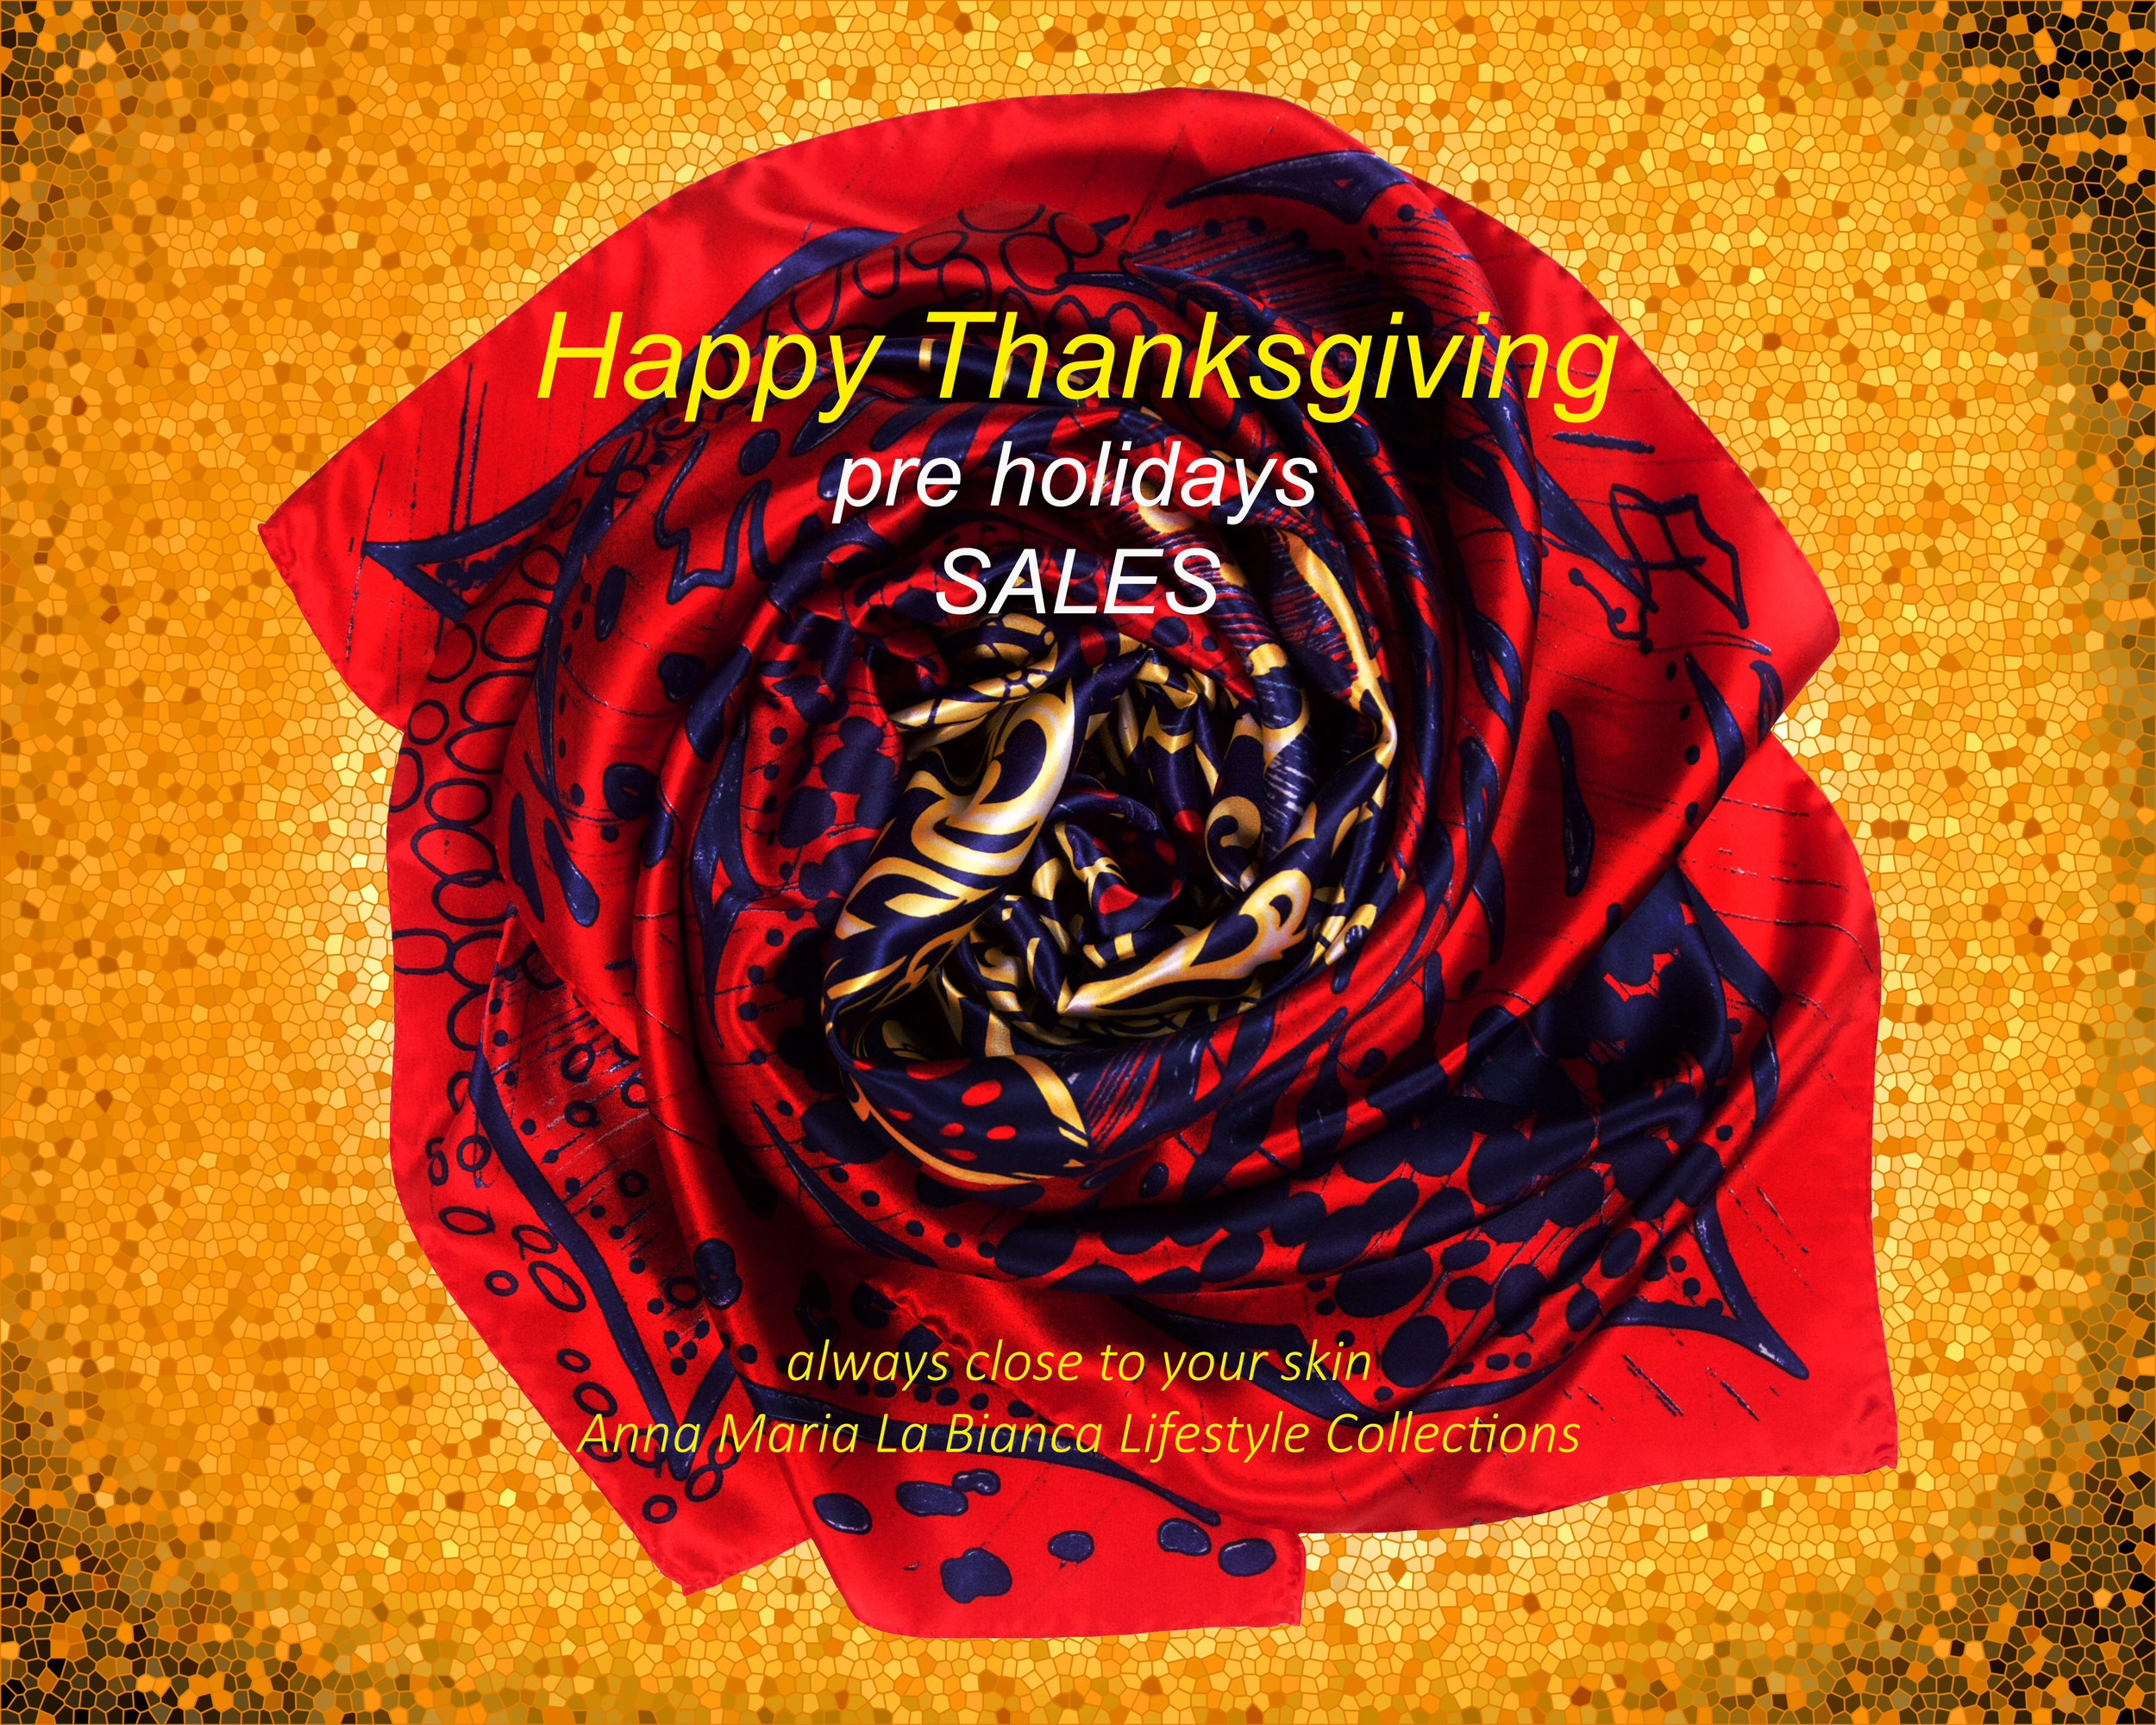 Happy-Thanksgiving-web-max.jpg